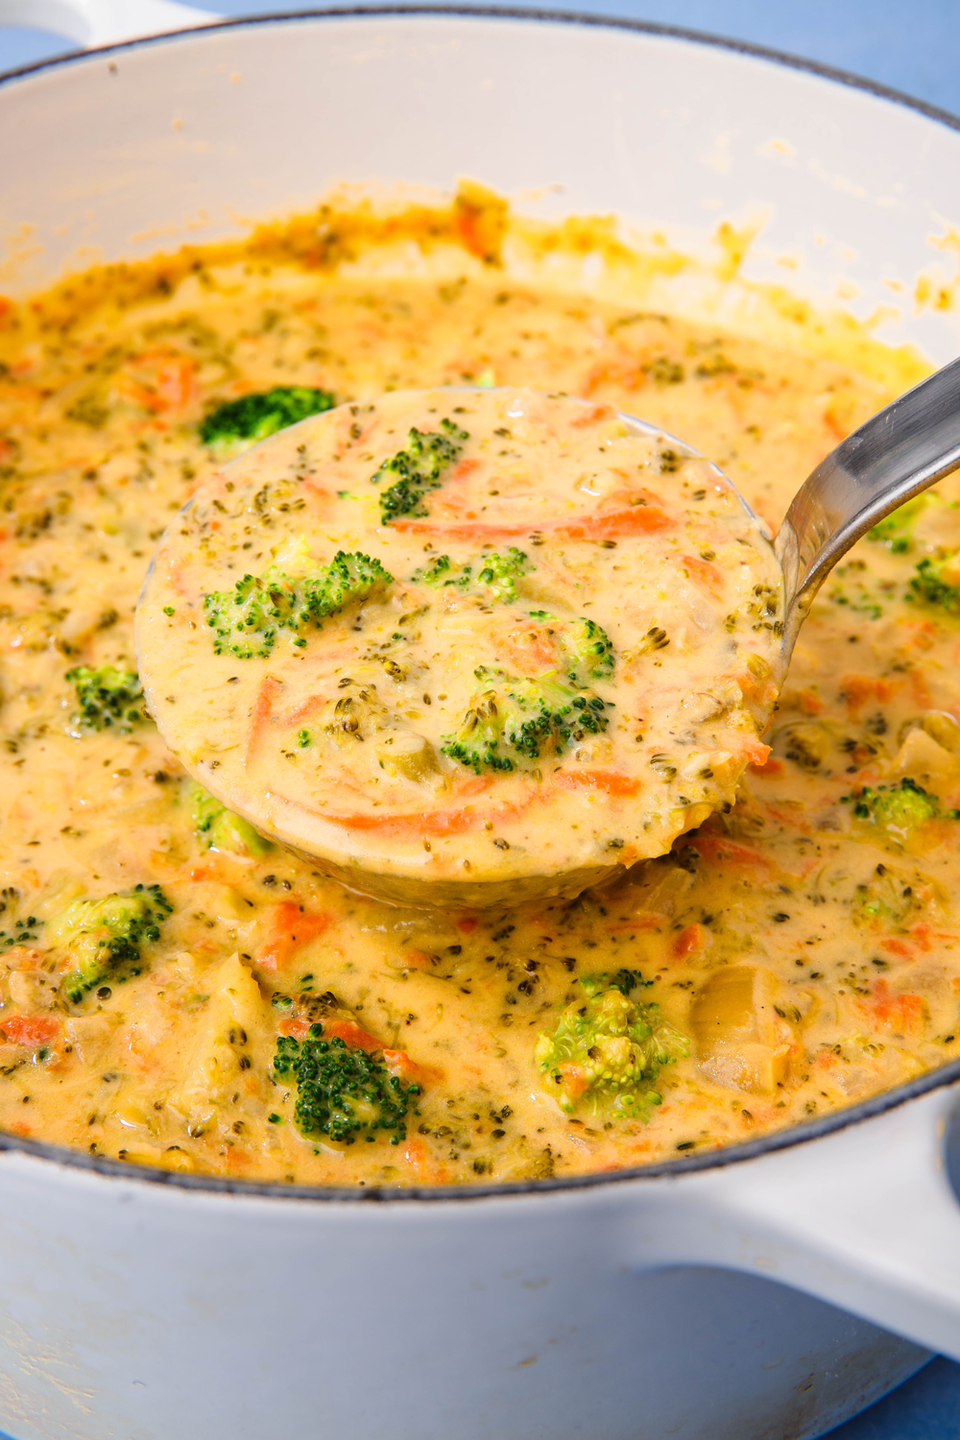 "<p>See ya later, soup cans.</p><p>Get the recipe from <a href=""https://delish.com/cooking/recipe-ideas/recipes/a50009/broccoli-cheddar-soup-recipe/"" rel=""nofollow noopener"" target=""_blank"" data-ylk=""slk:Delish"" class=""link rapid-noclick-resp"">Delish</a>.</p>"